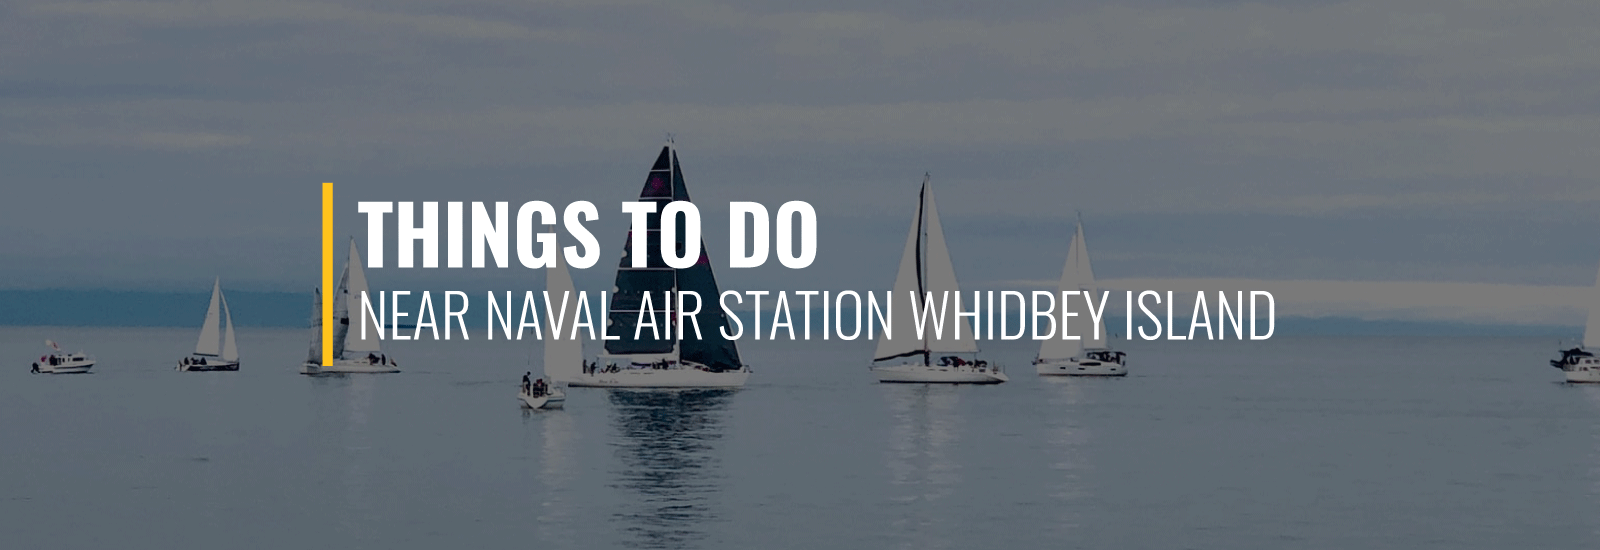 NAS Whidbey Things To Do